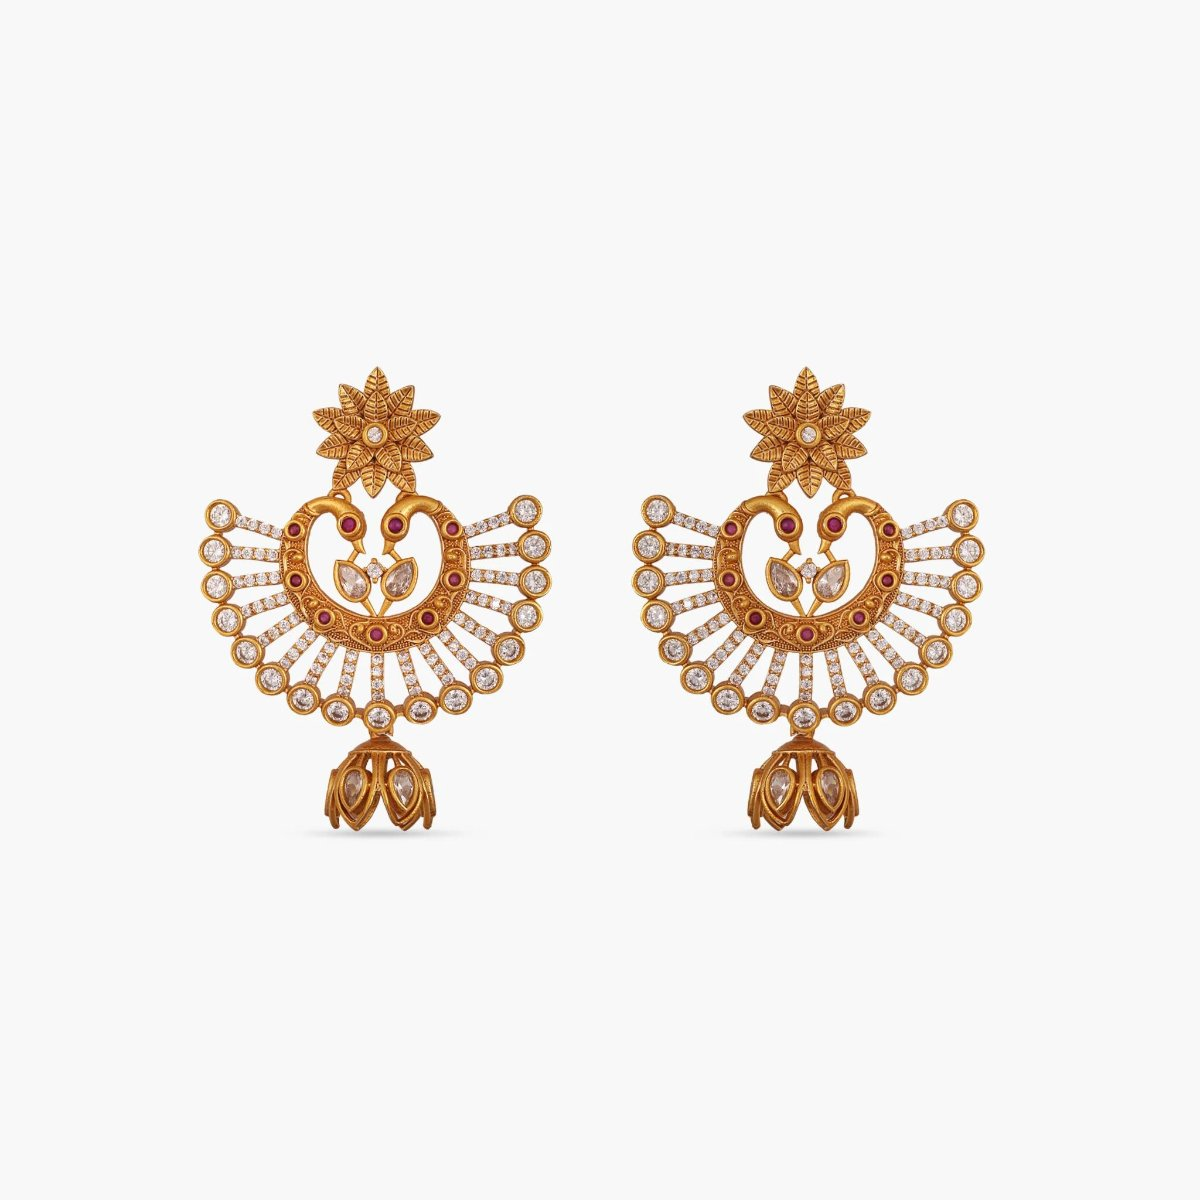 Mileya Antique Earrings